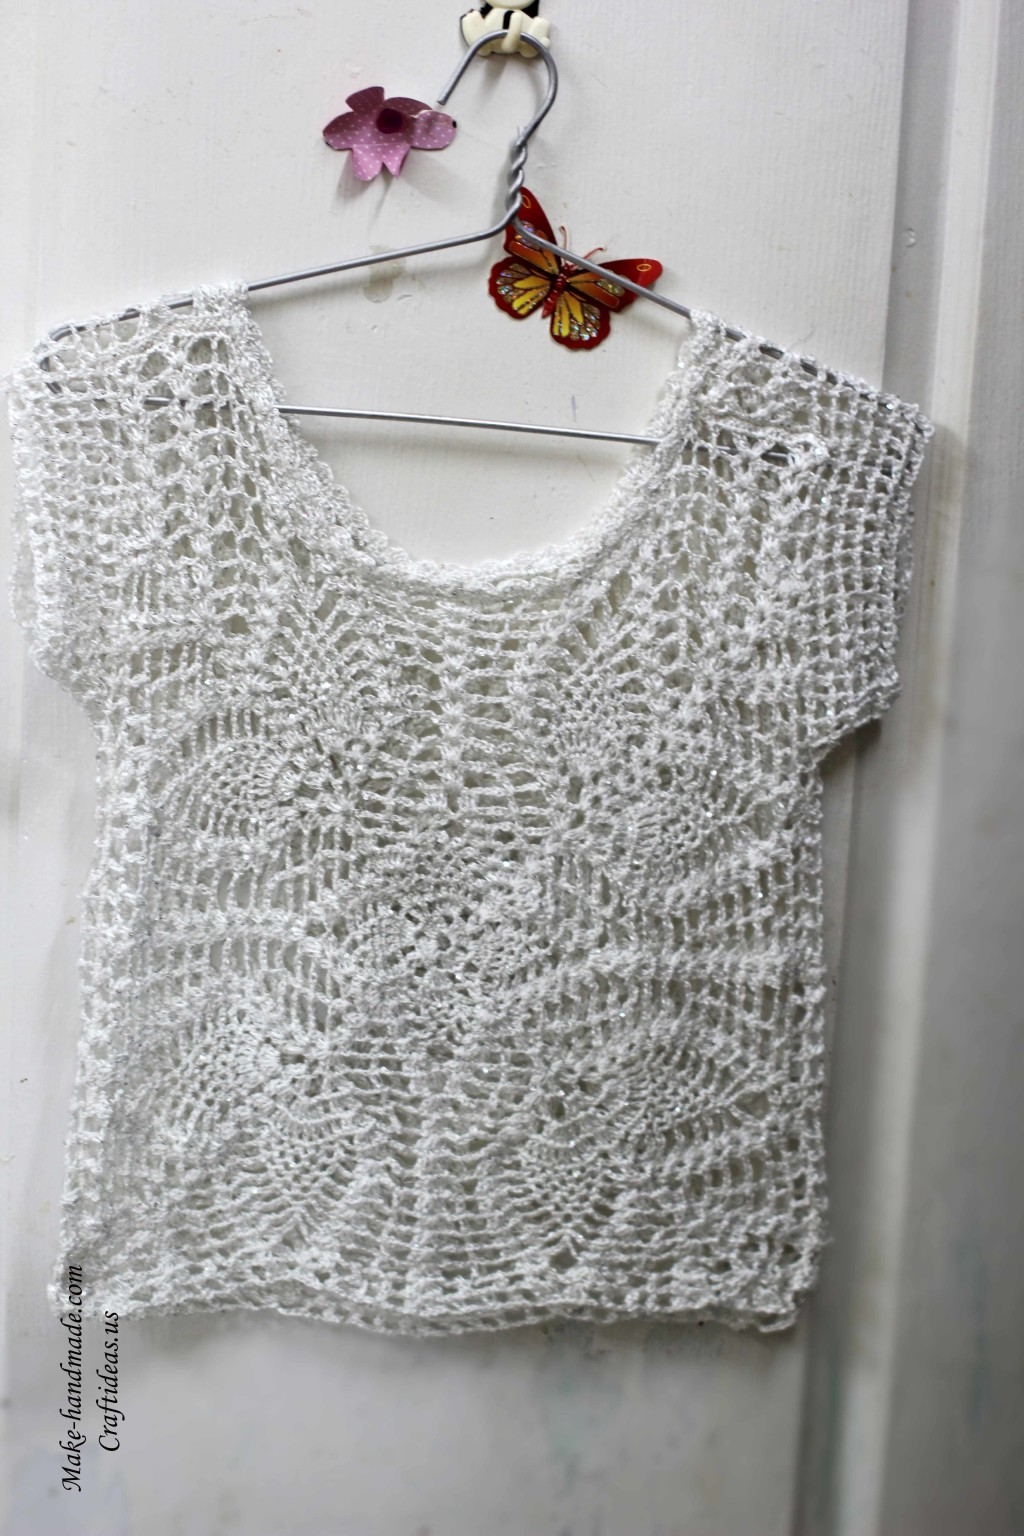 Crochet fashion ideas